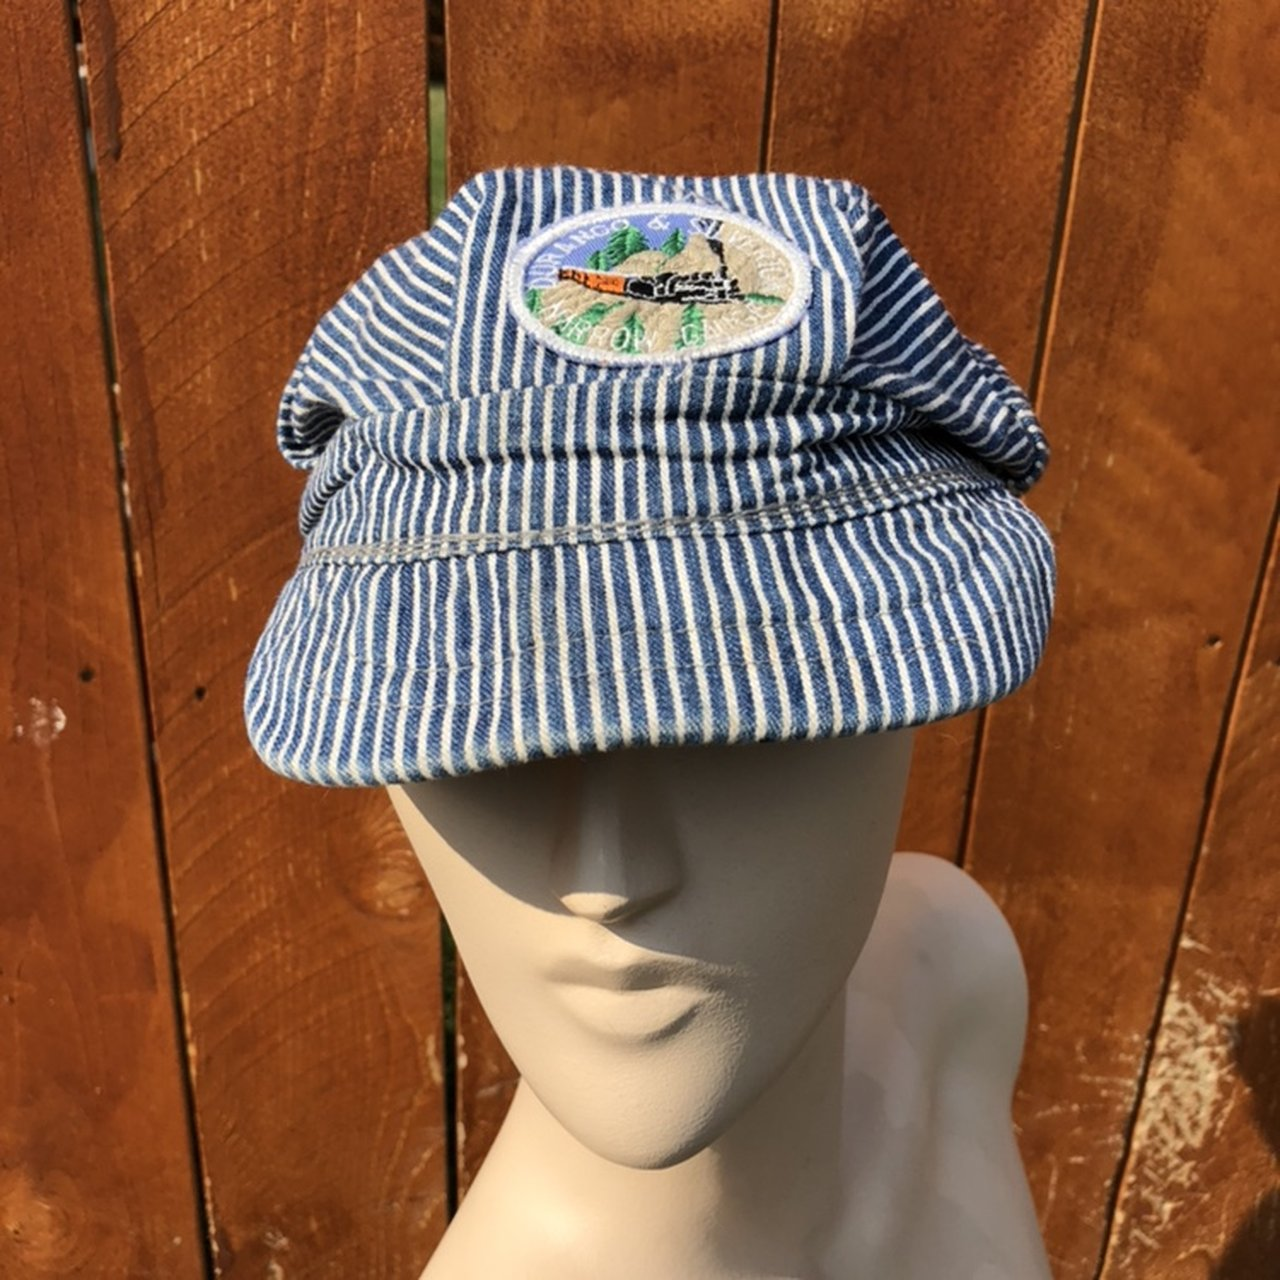 b21fe8a40de Durango   Silverton conductors hat! Stretchy back makes for - Depop